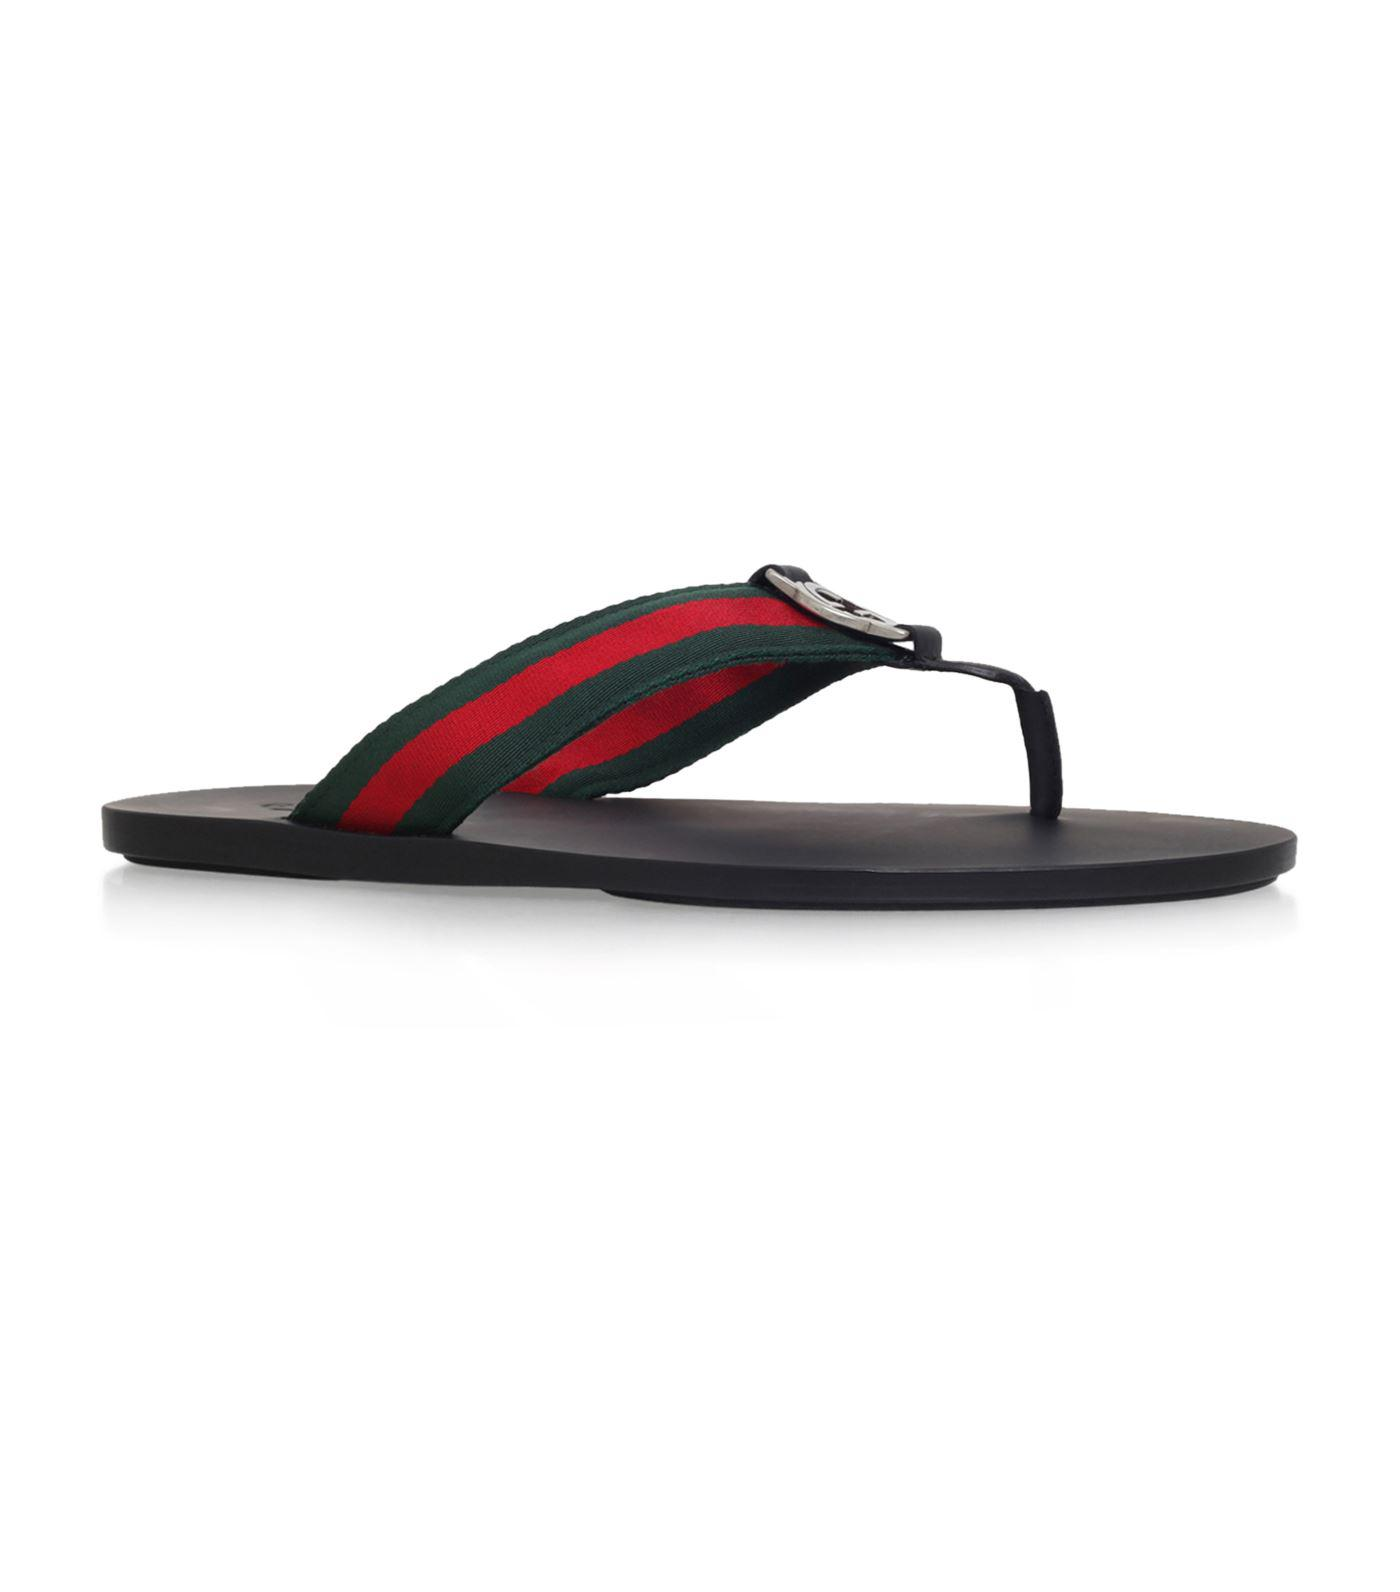 69d4be14e21 Lyst - Gucci GG Web Thong Sandals in Black for Men